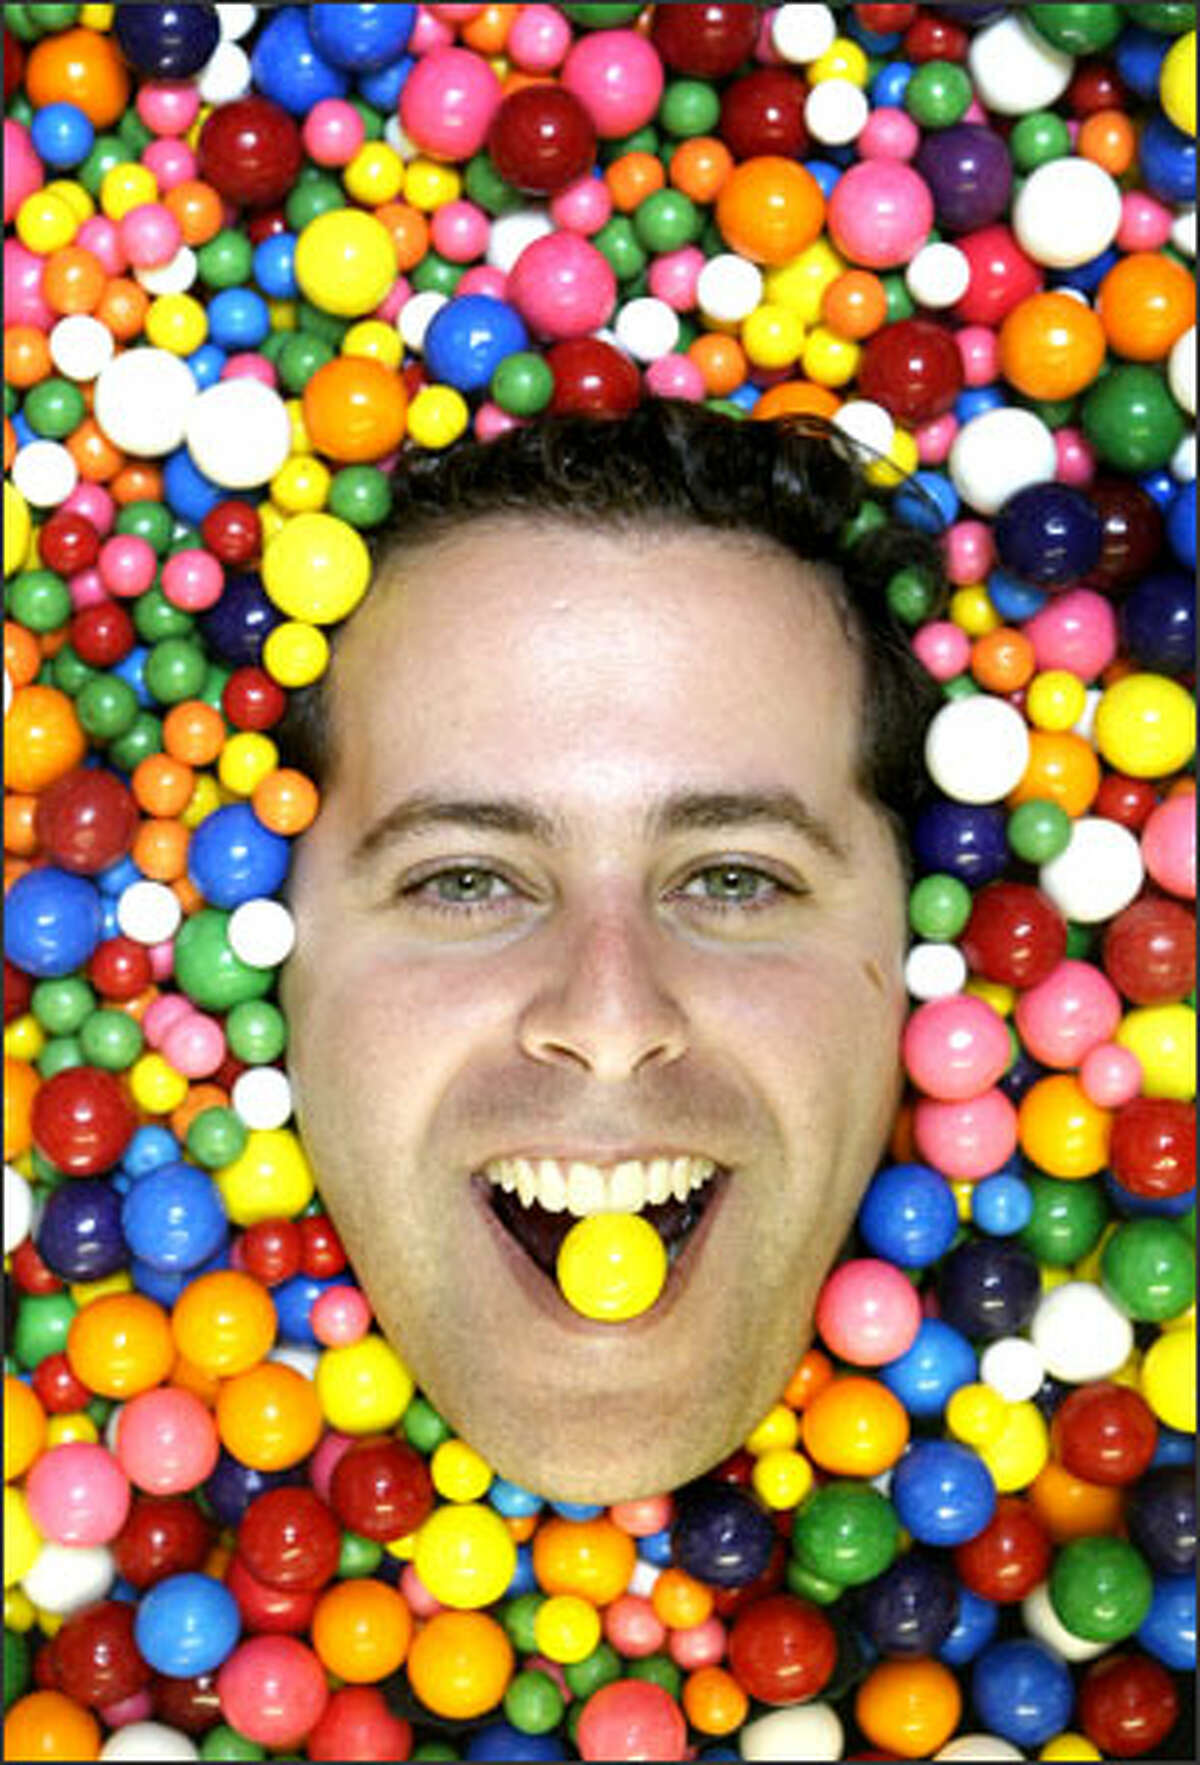 Tal Moore, founder of Gumballs.com, revels in the sweet confections dispensed by the machines that his company sells.